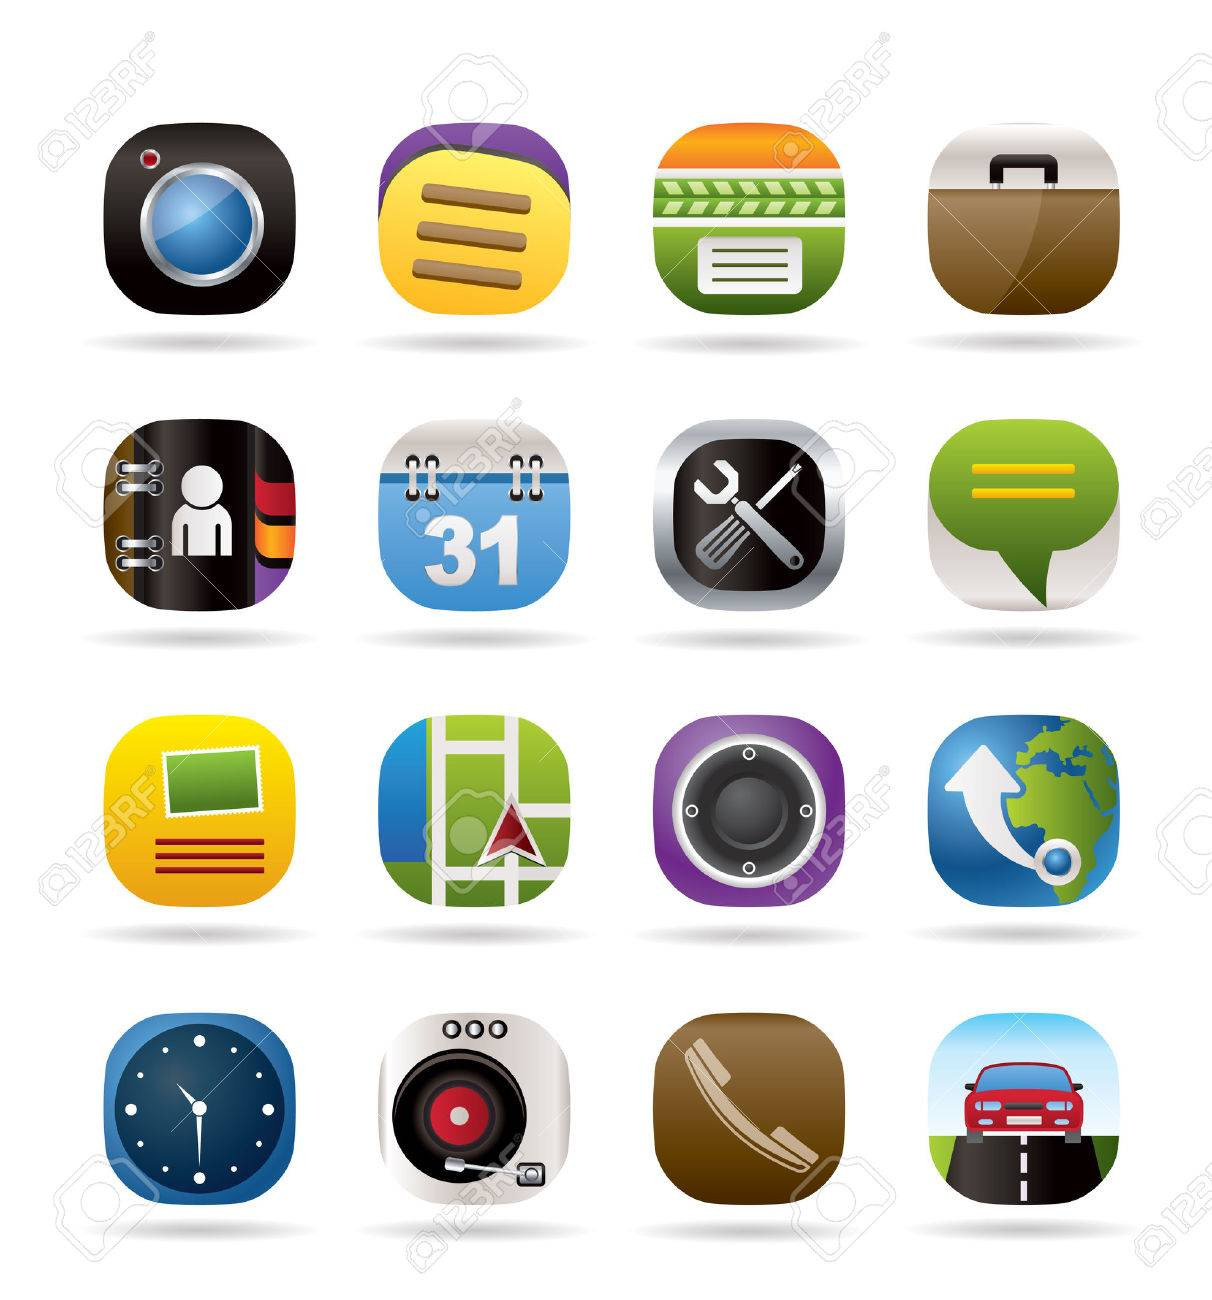 Mobile phone and computer icons - vector icon set Stock Vector - 8670332